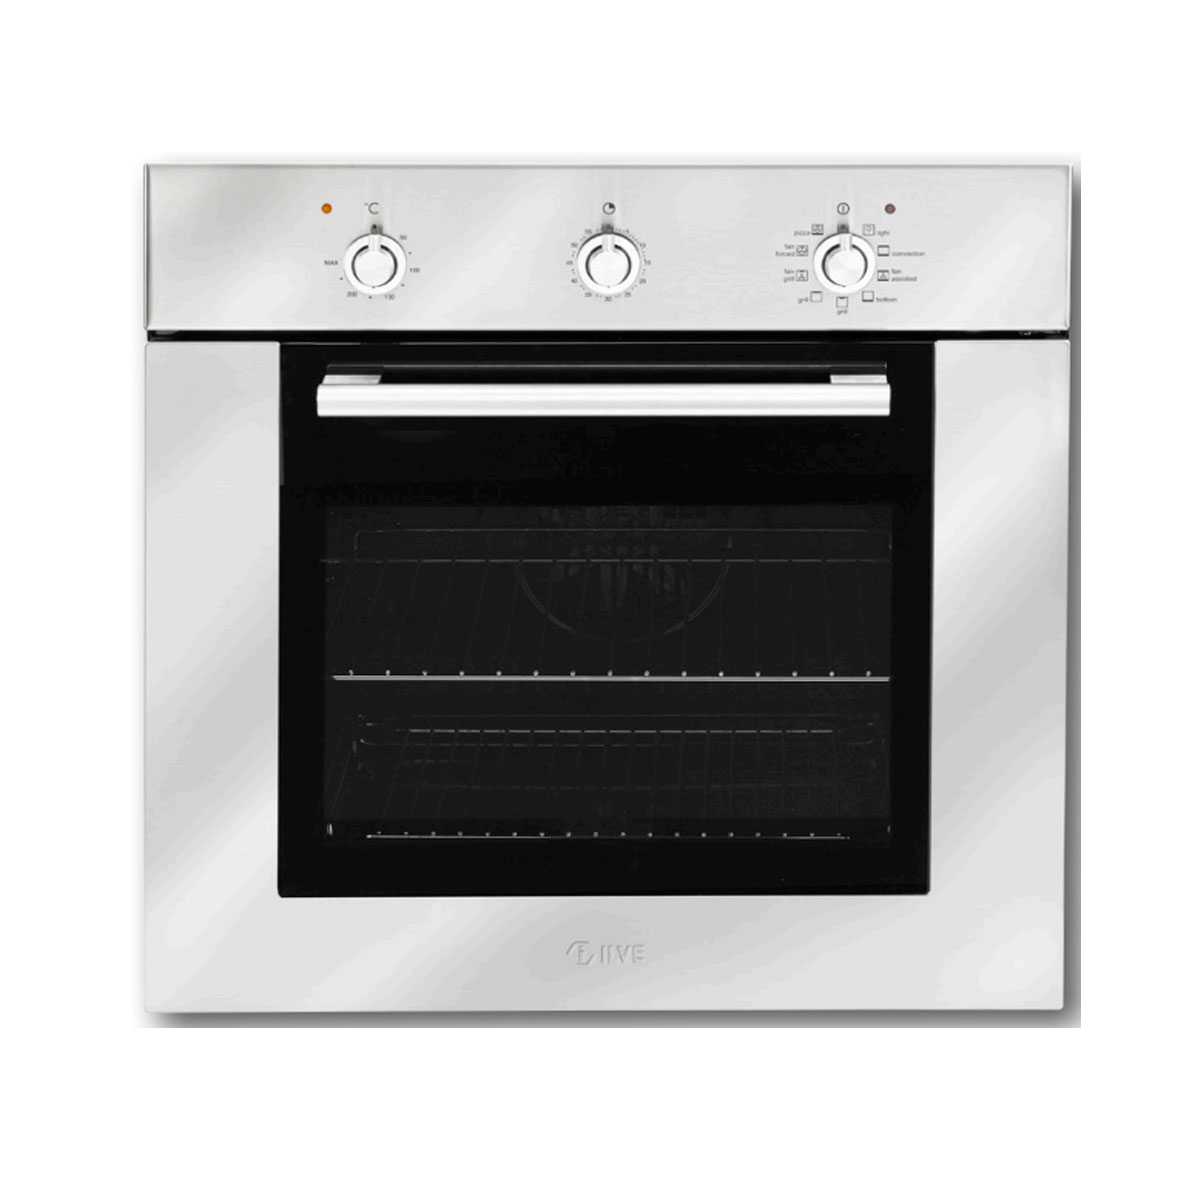 Ilve ILO690X 600mm/60cm Electric Wall Oven 32956